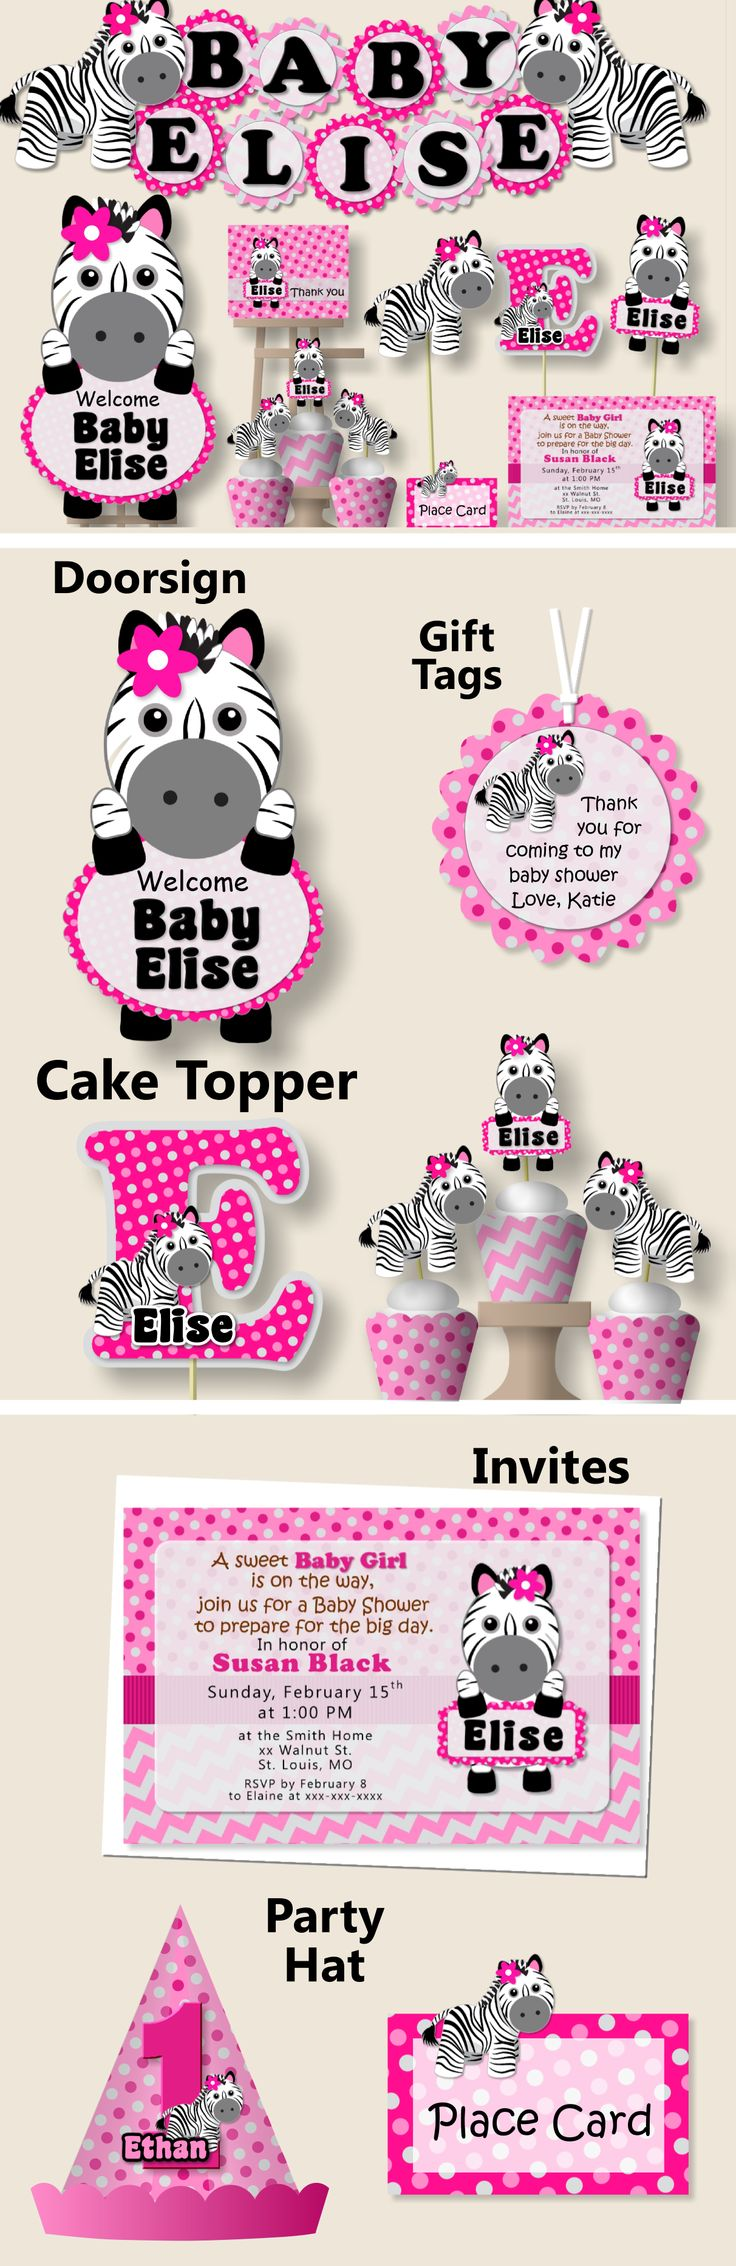 Pink Baby Girl Zebra Baby Shower Decorations, Zebra Birthday Party Supplies - Package, Invitation, Cake Topper, Favors, Cupcakes, Invite #bcpaperdesigns